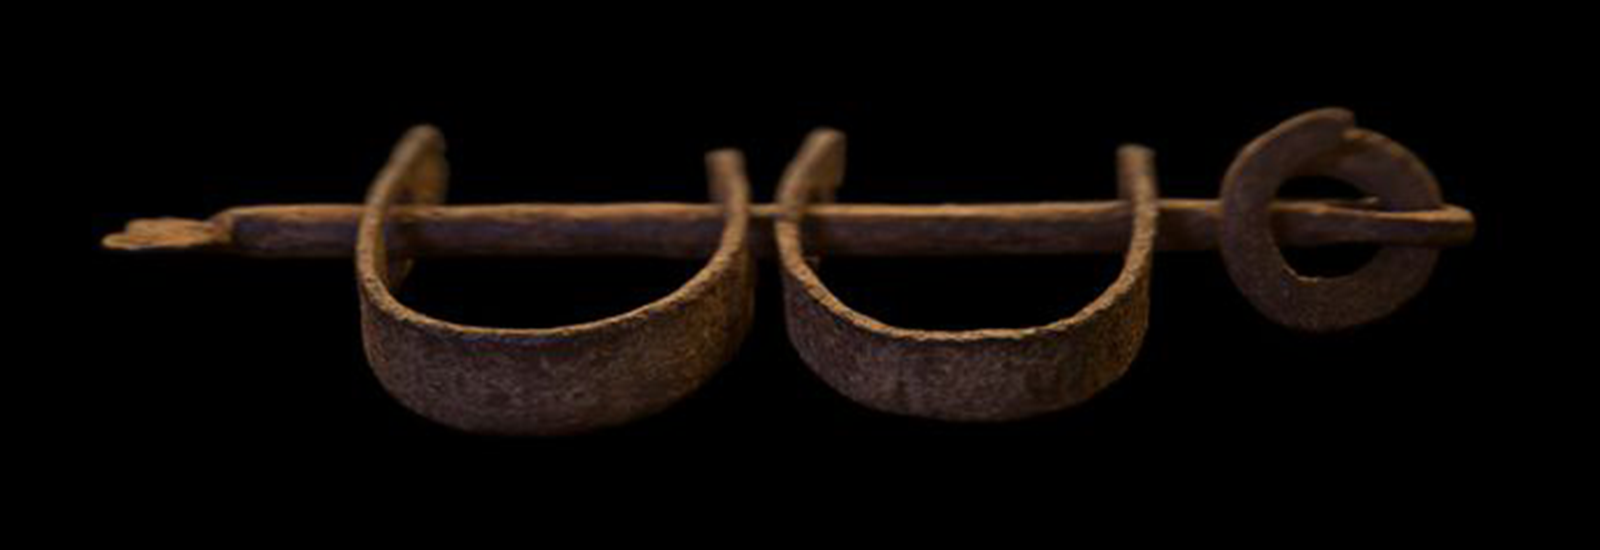 Photograph of iron slave shackles